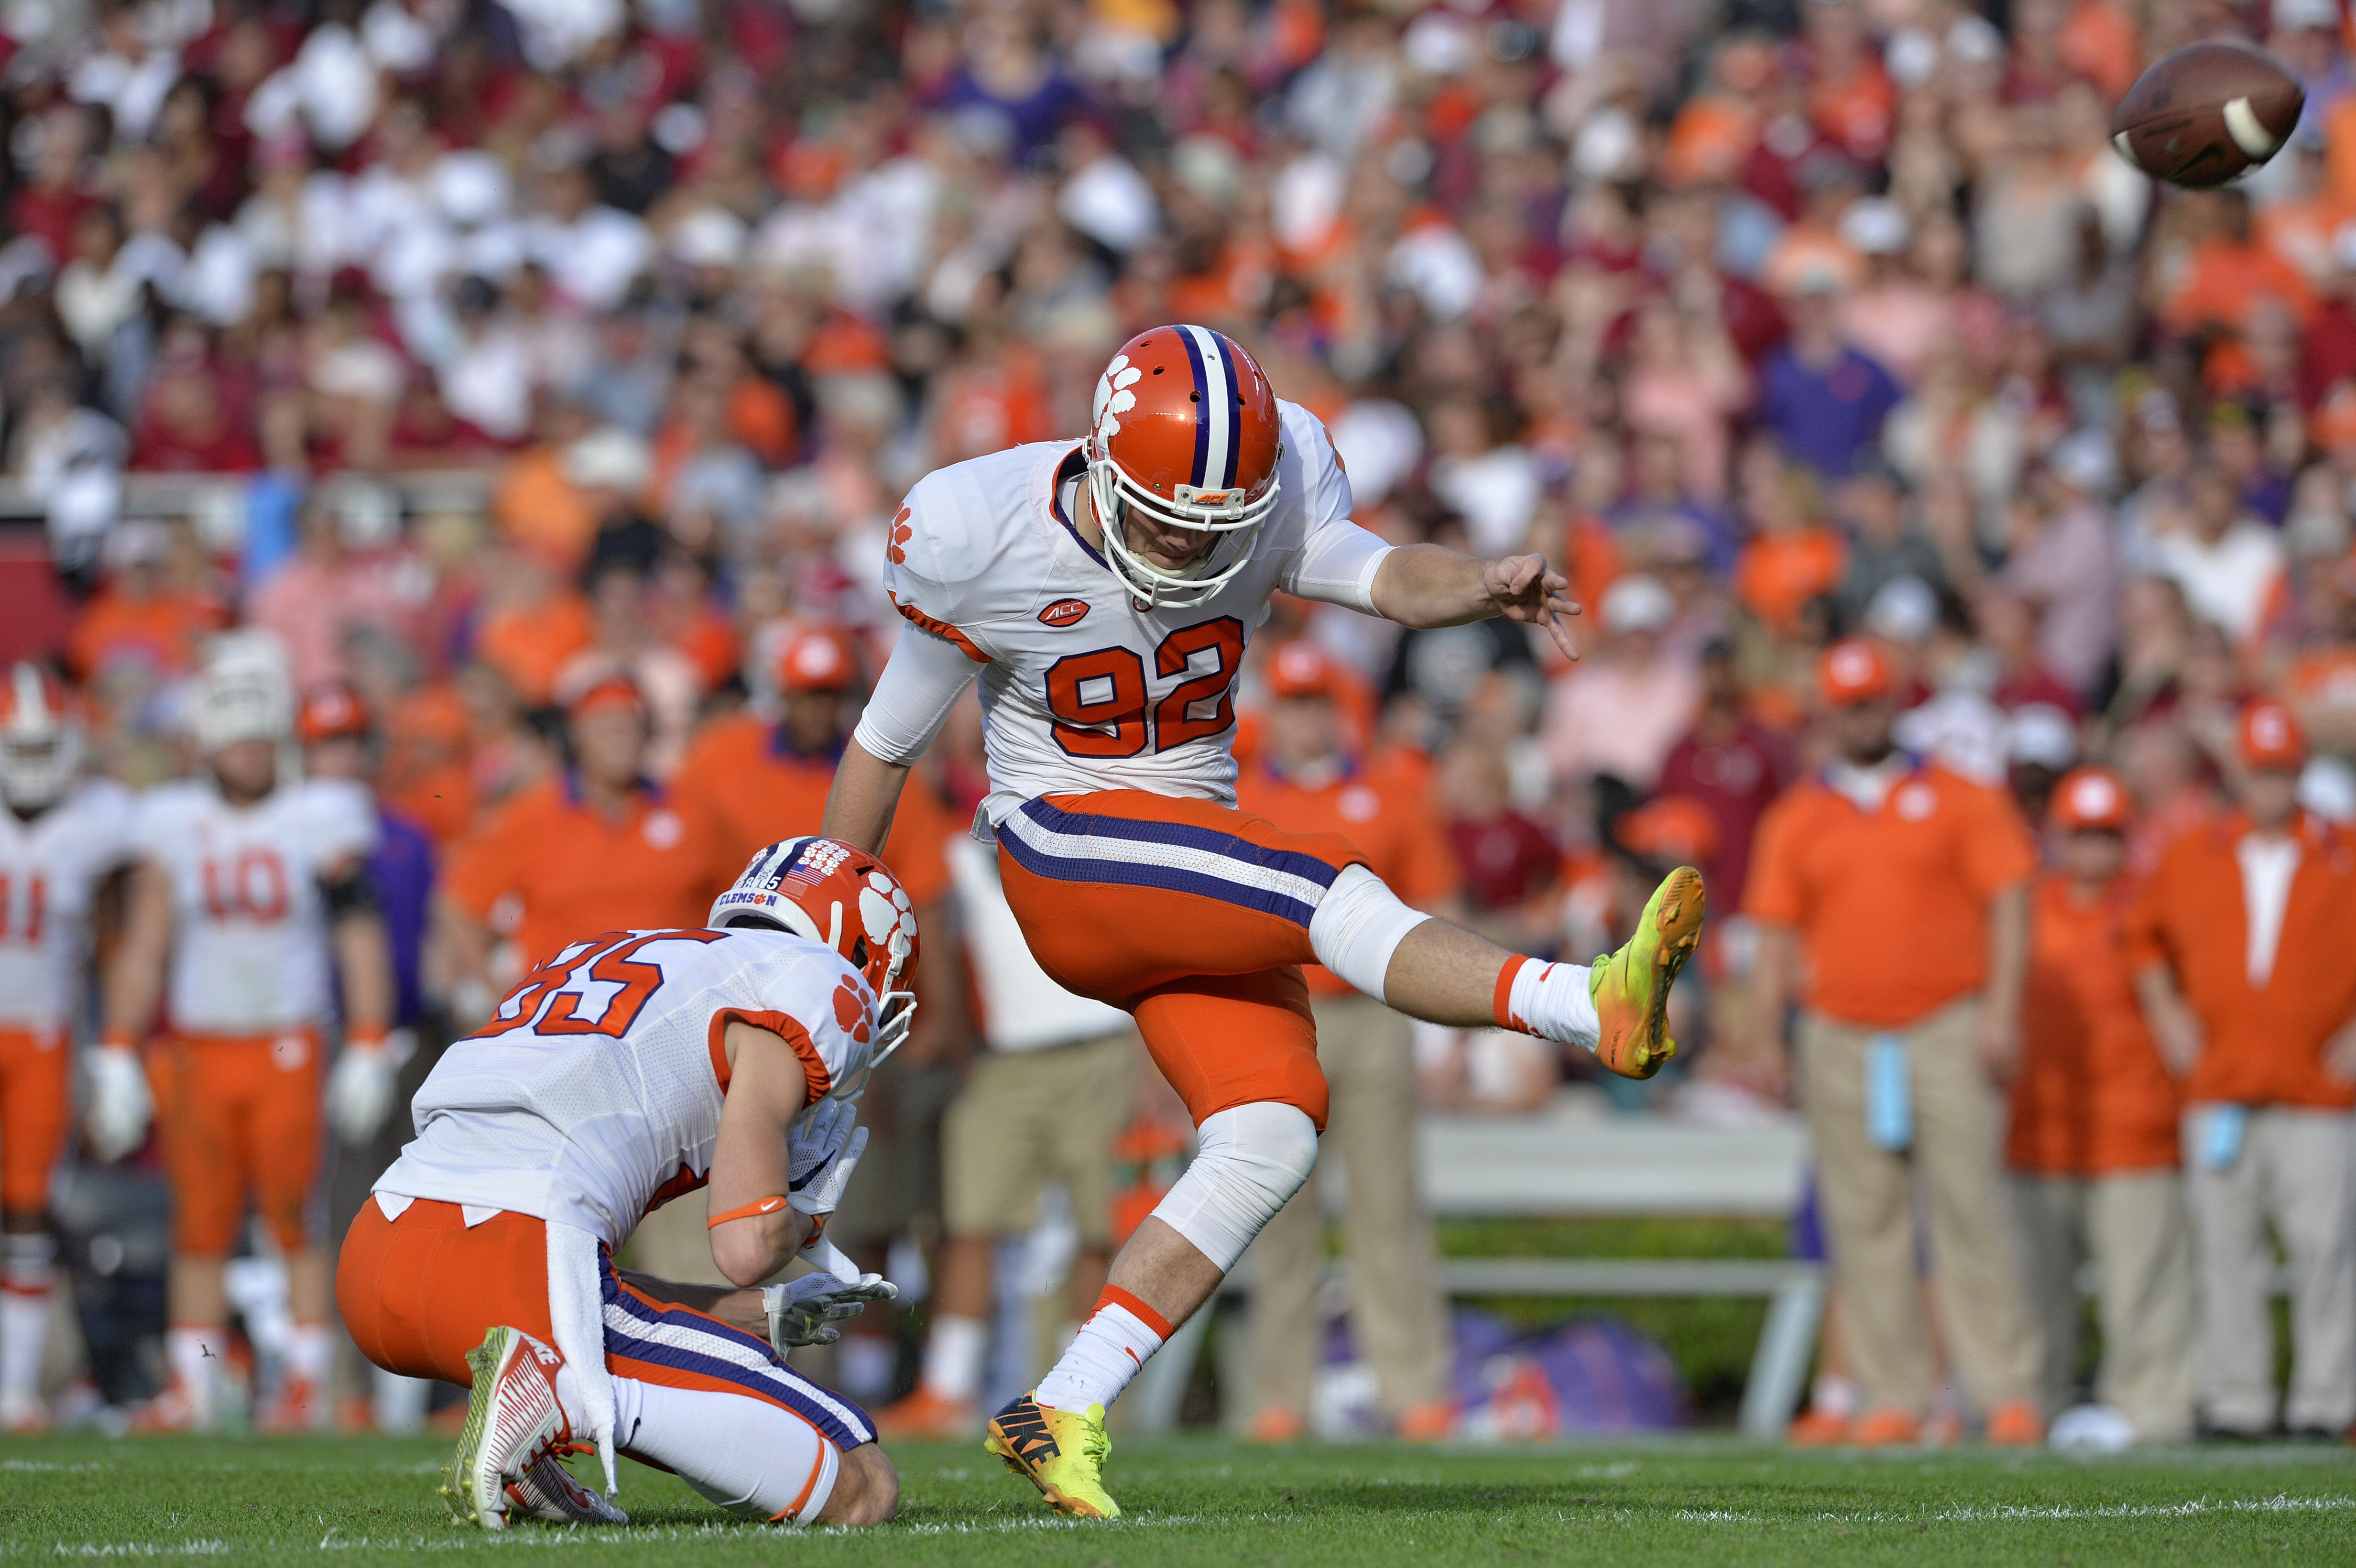 FILE - In this Nov. 28, 2015, file photo, Clemson kickerGreg Huegel connects for a 36 yard field goal during the second half of an NCAA college football game against South Carolina in Columbia, S.C. Huegel started last season as a walk-on kicker with litt